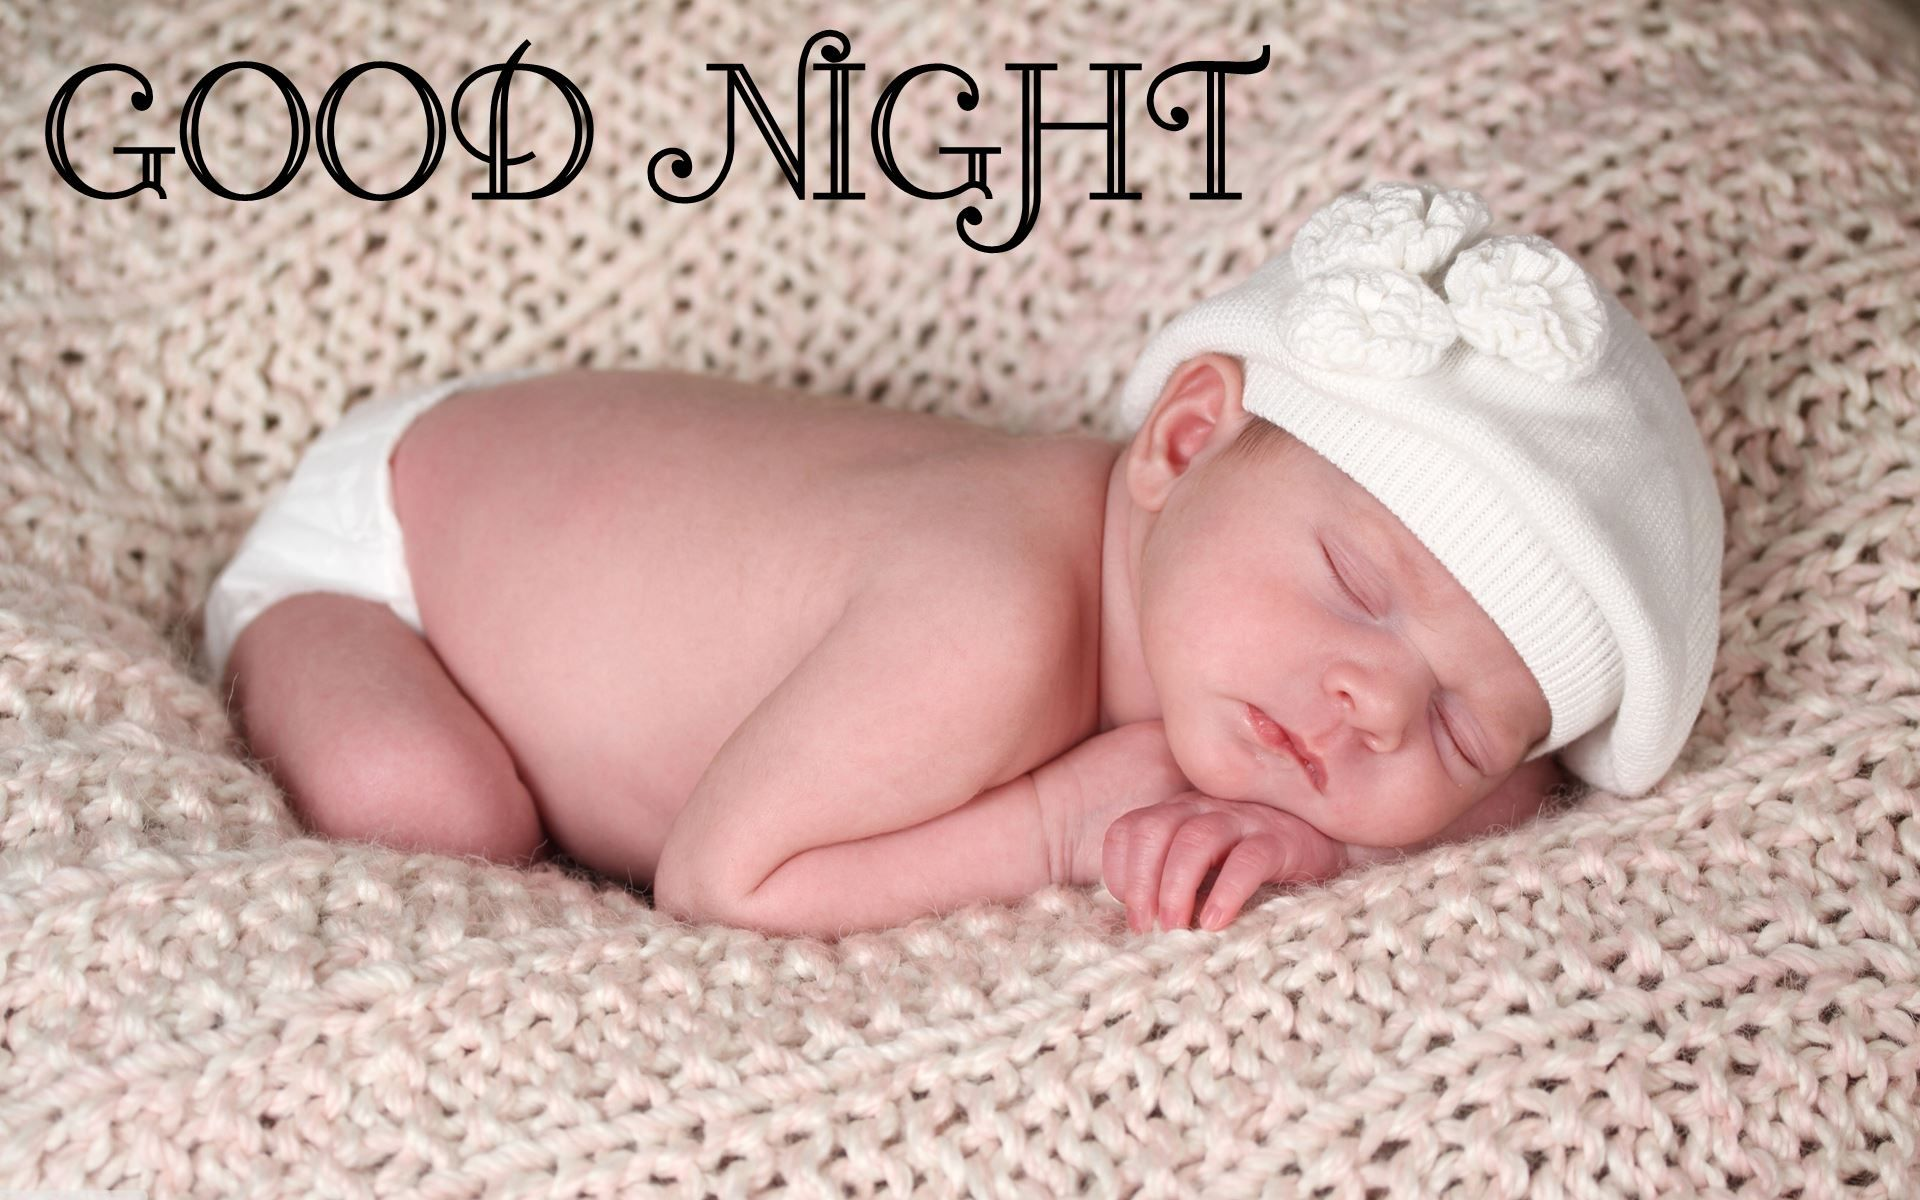 201 Beautiful Baby Good Night Images Good Night Baby Photos Download Good Morning